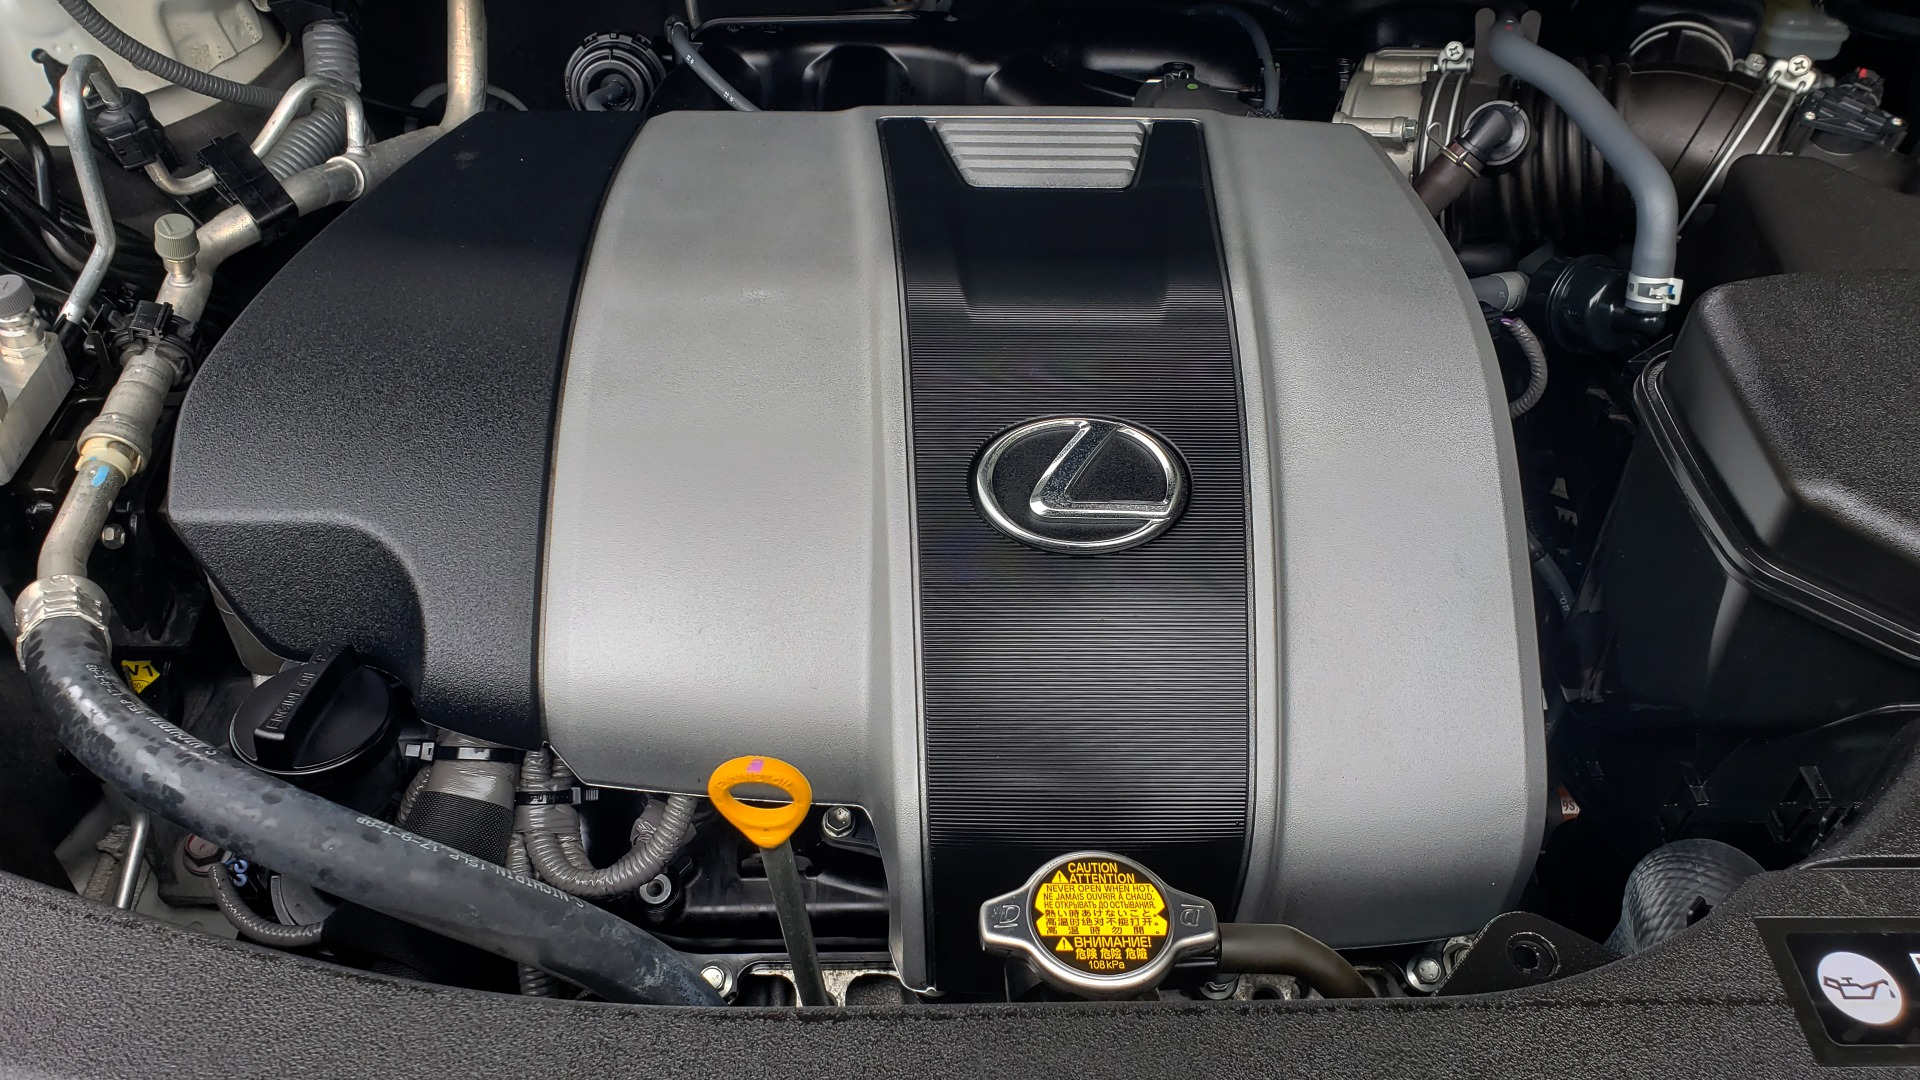 Used 2016 Lexus RX 350 FWD / 4-DR / 3.5L V6 / 8-SPD AUTO / LEATHER / REARVIEW for sale Sold at Formula Imports in Charlotte NC 28227 13